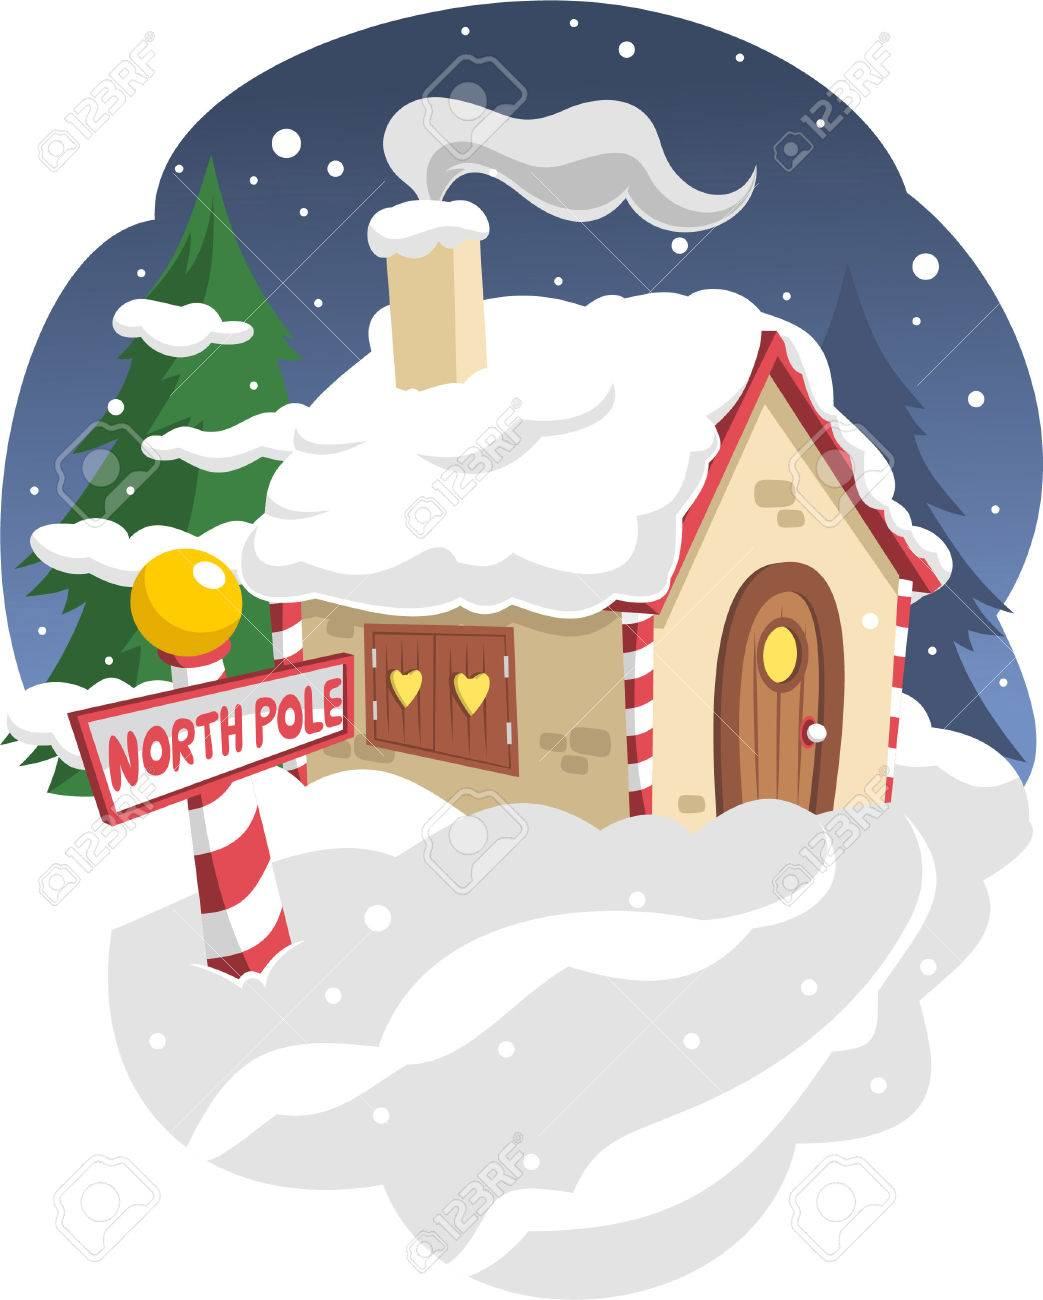 Santas House In The North Pole Royalty Free Cliparts Vectors And Stock Illustration Image 33789007